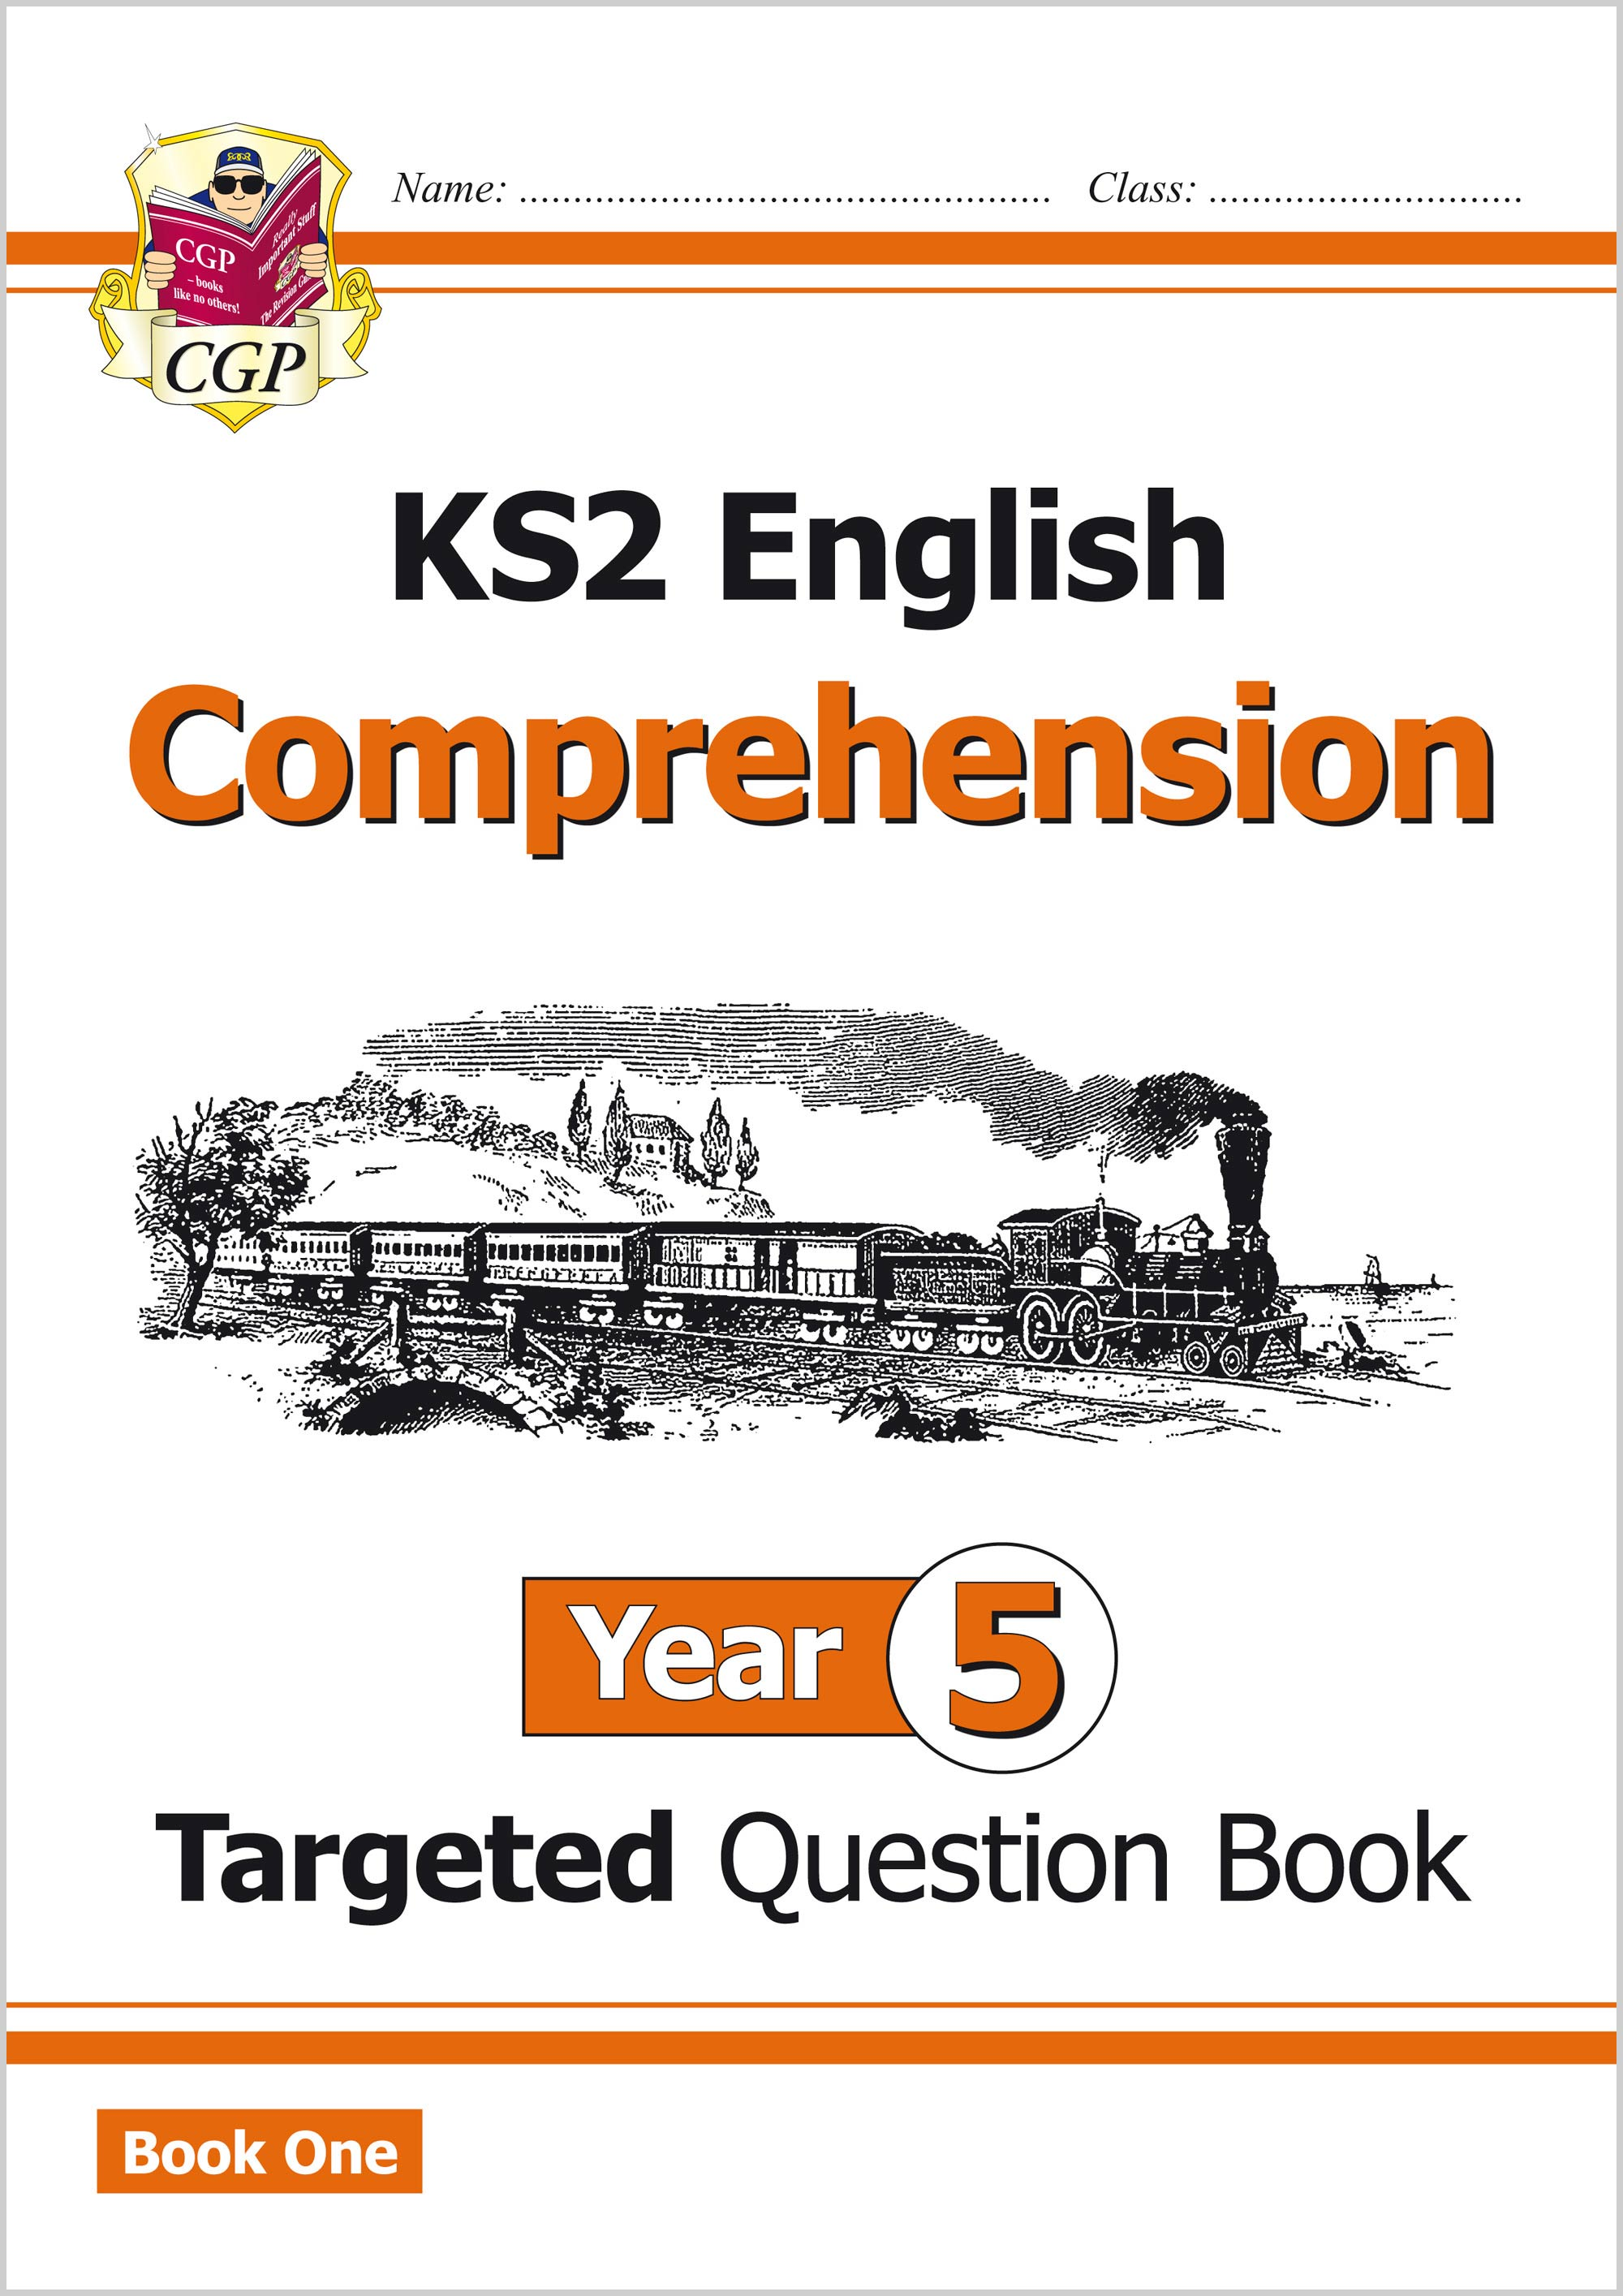 E5CW21 - KS2 English Targeted Question Book: Year 5 Comprehension - Book 1